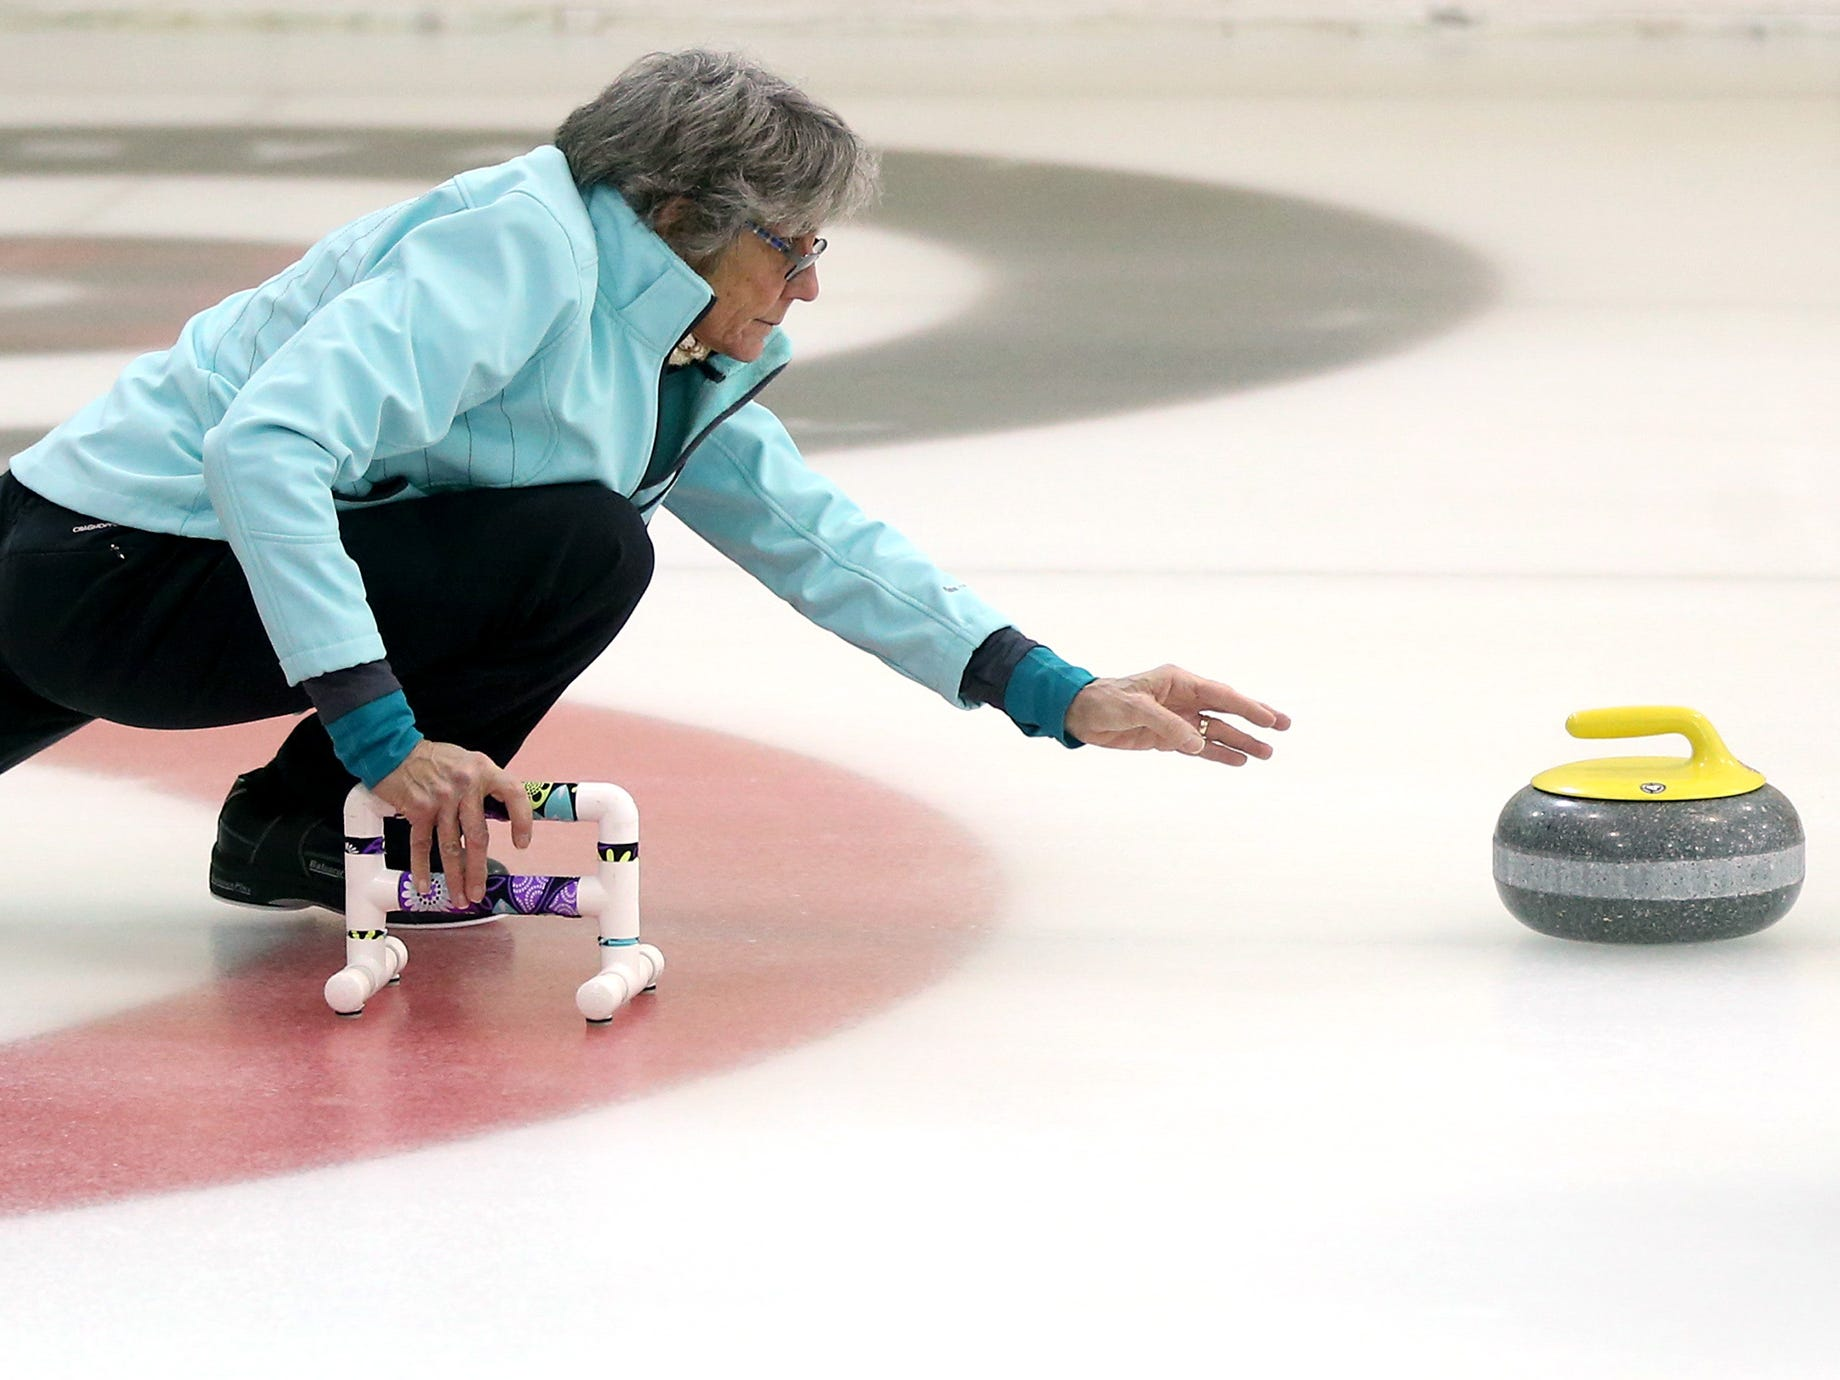 Elaine Koepke of the Milwaukee Curling Club starts a stone's slide during the Wauwatosa Curling Club's 60th annual Badger Women's Bonspiel at the Mueller Building in Hart Park on Jan. 25.